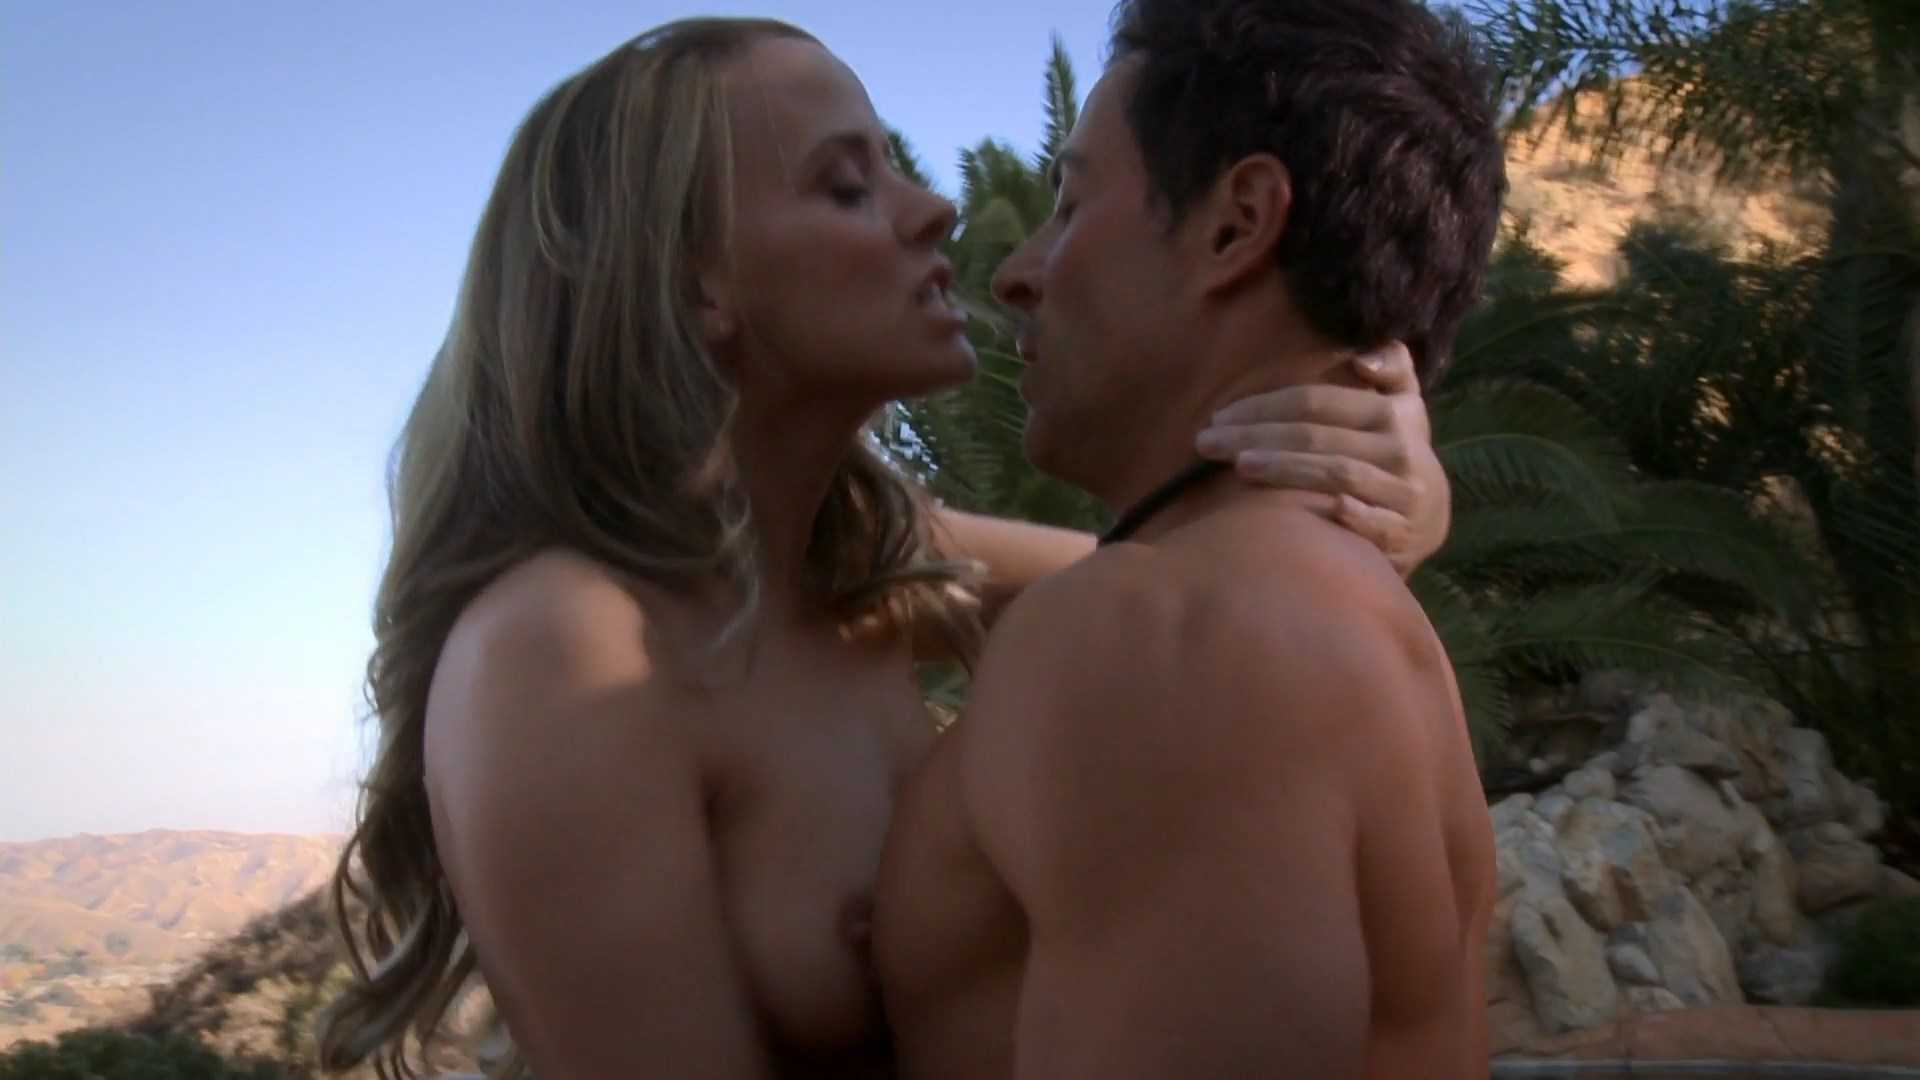 Embarrassed photoshoot hd nude video